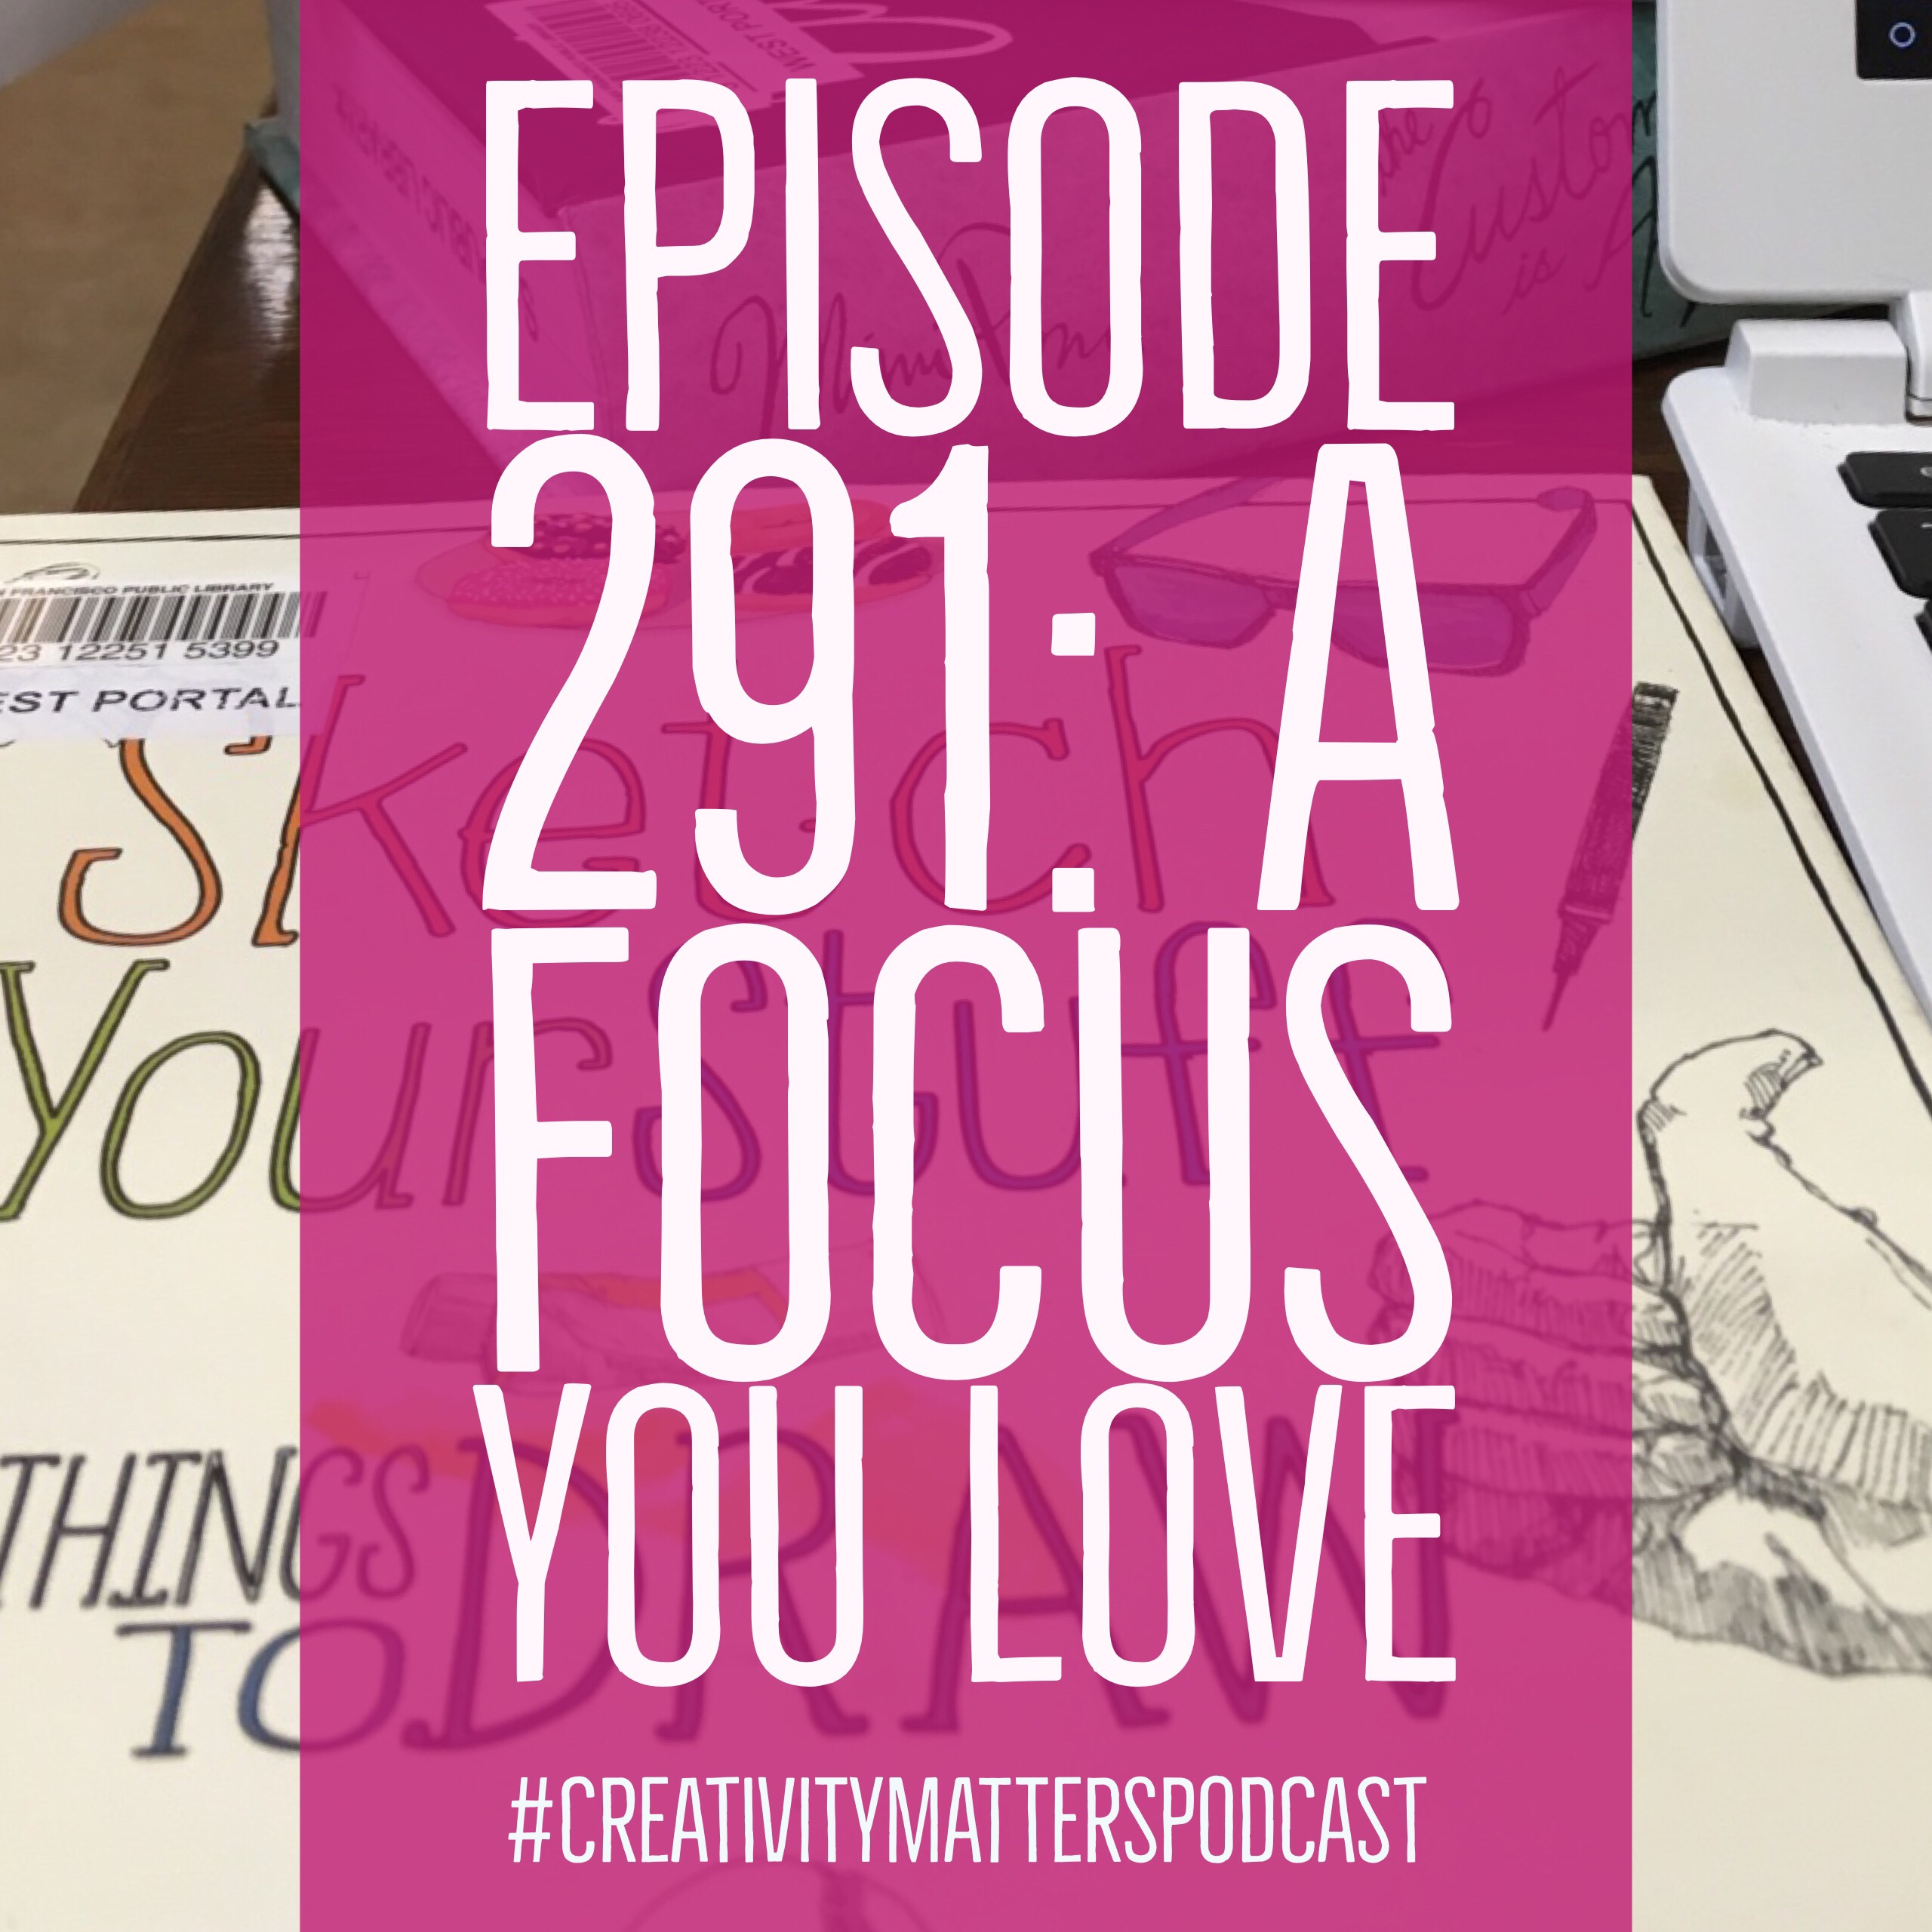 Episode 291: A Focus You Love